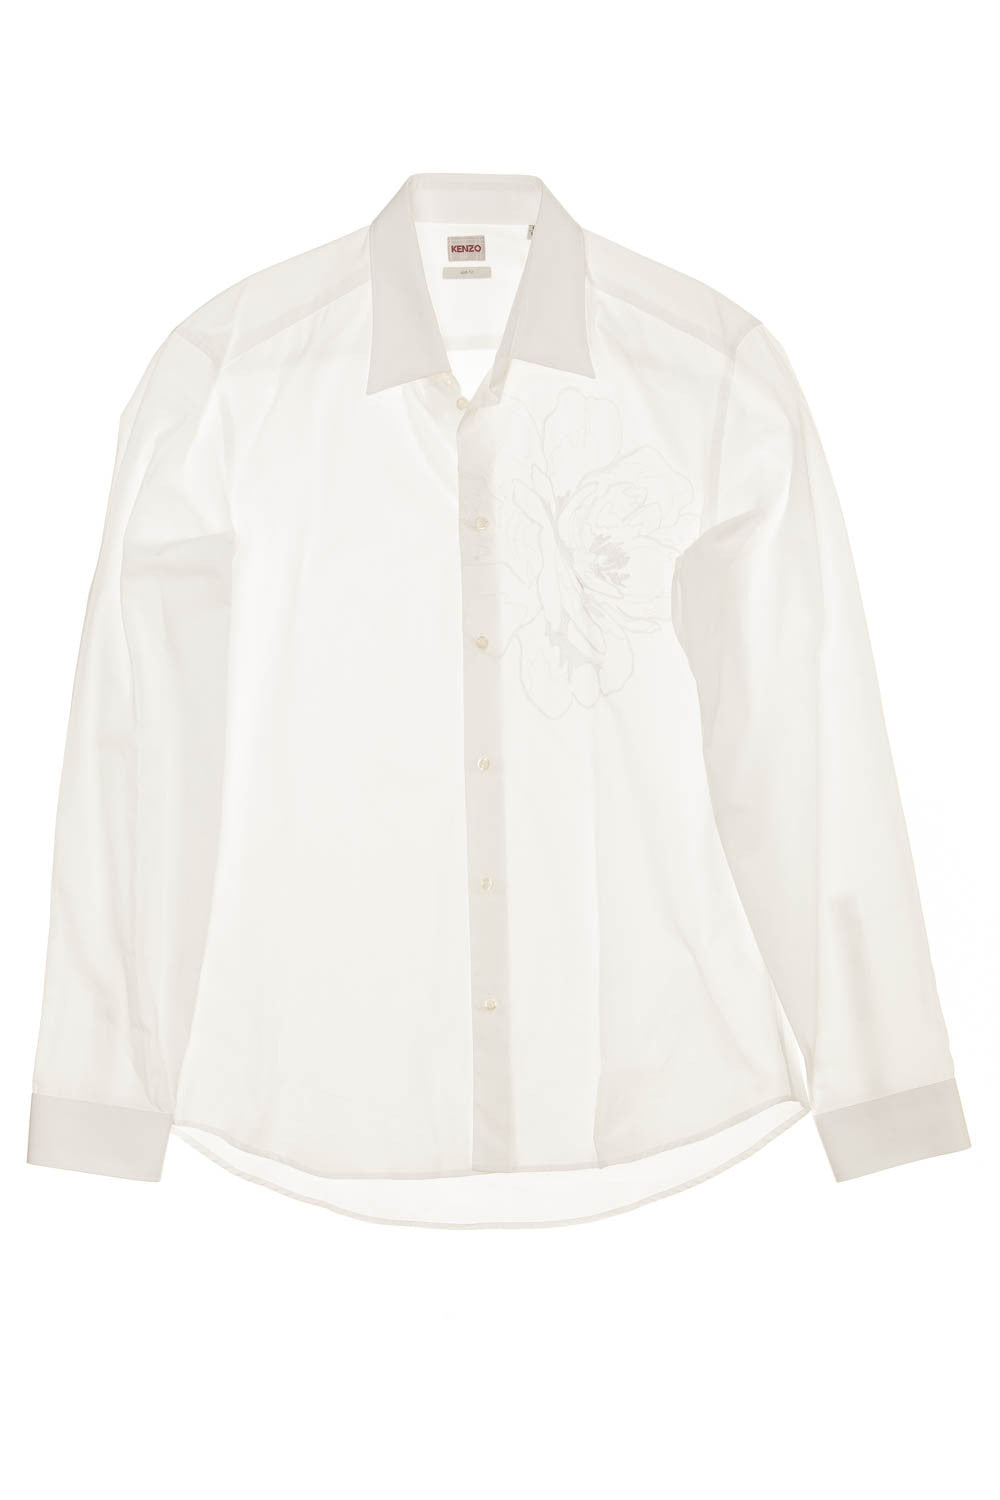 Kenzo - BN White Button Down with White Embossed Design - IT 41